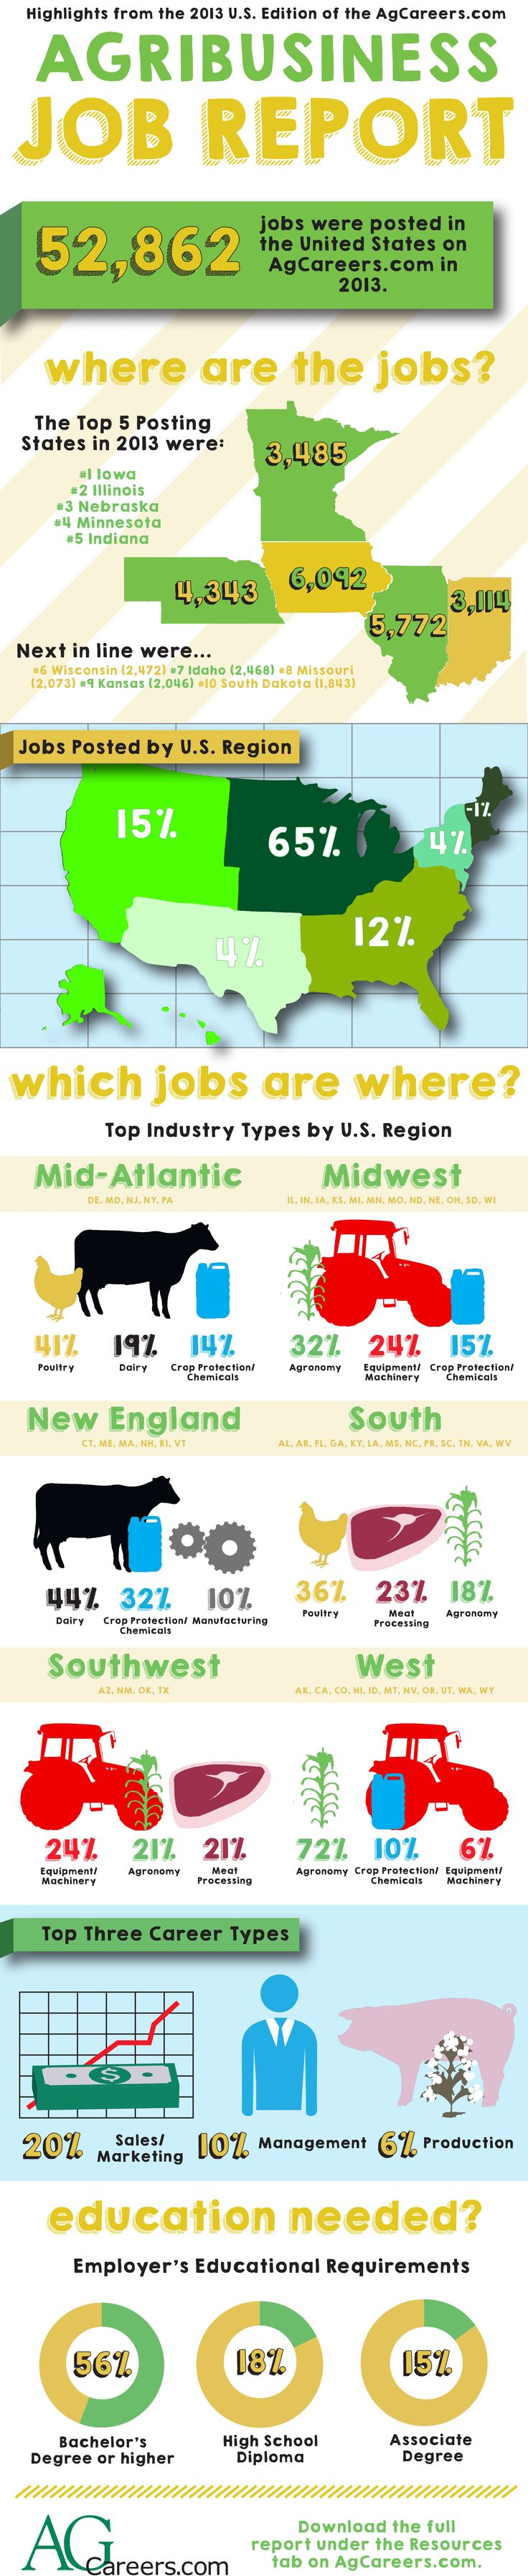 US #AgJobSeekers: Find out where and what are the hot jobs in agriculture right now plus what ag employers are looking for.